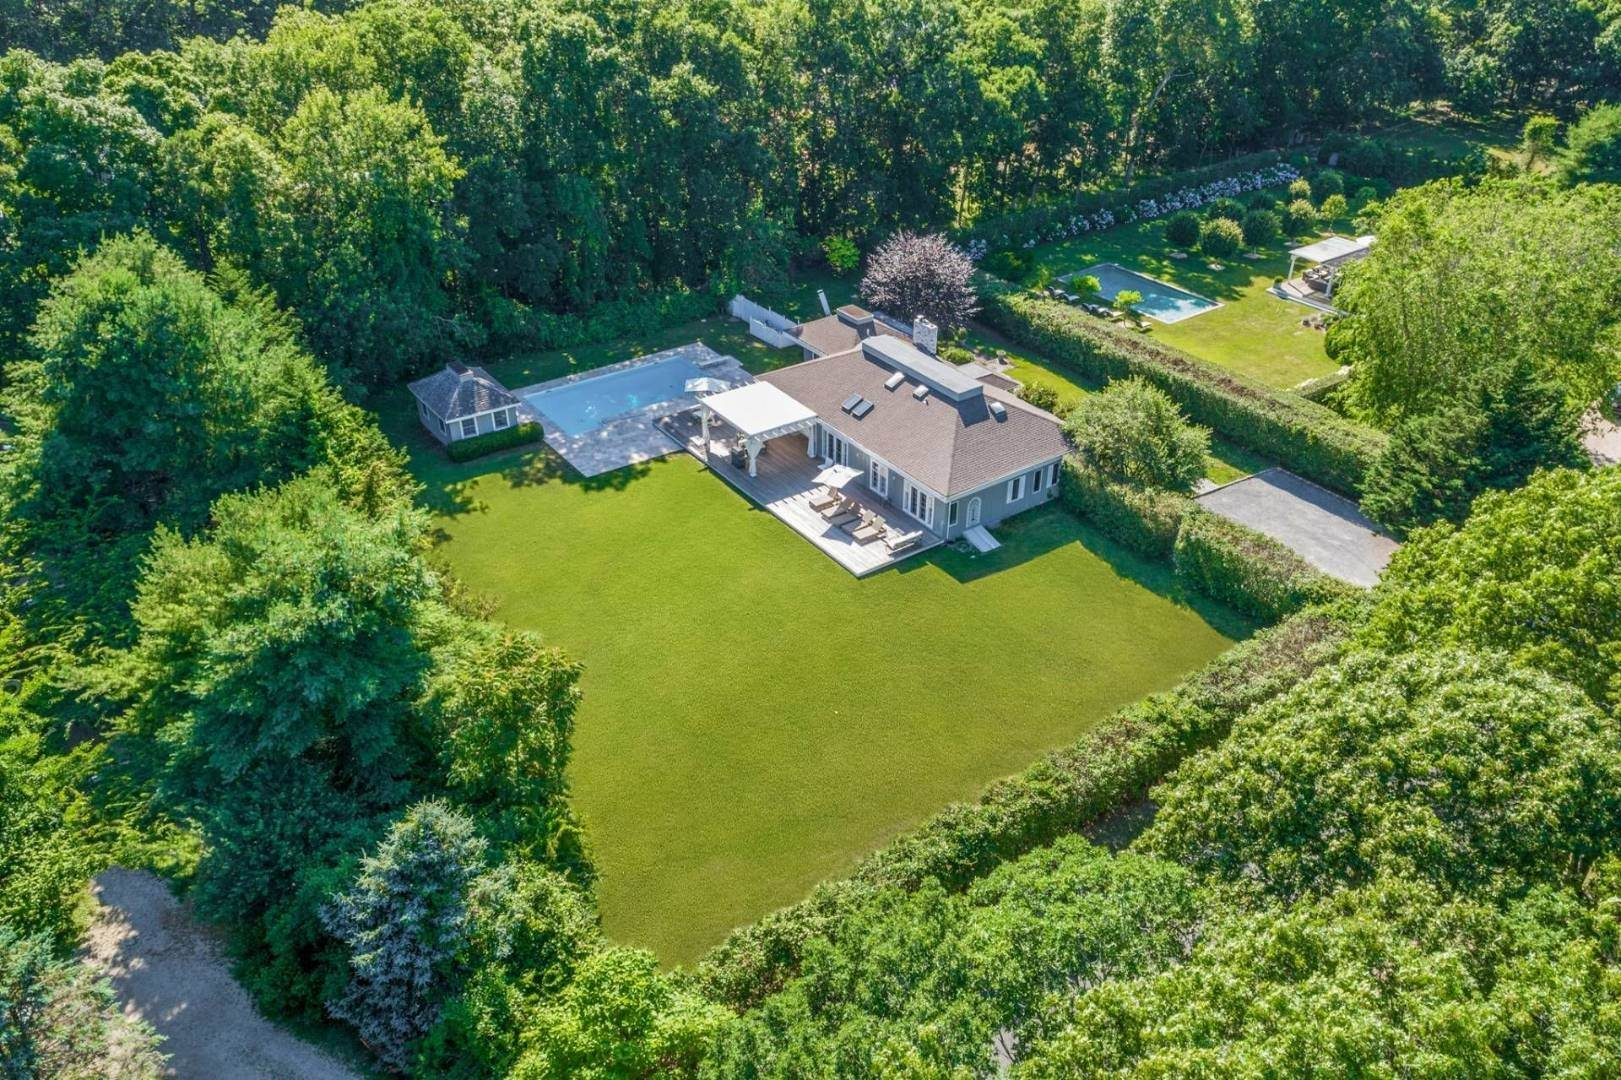 Single Family Home at Gorgeous Less Than A Mile To The Beach! Sagaponack, NY 11962